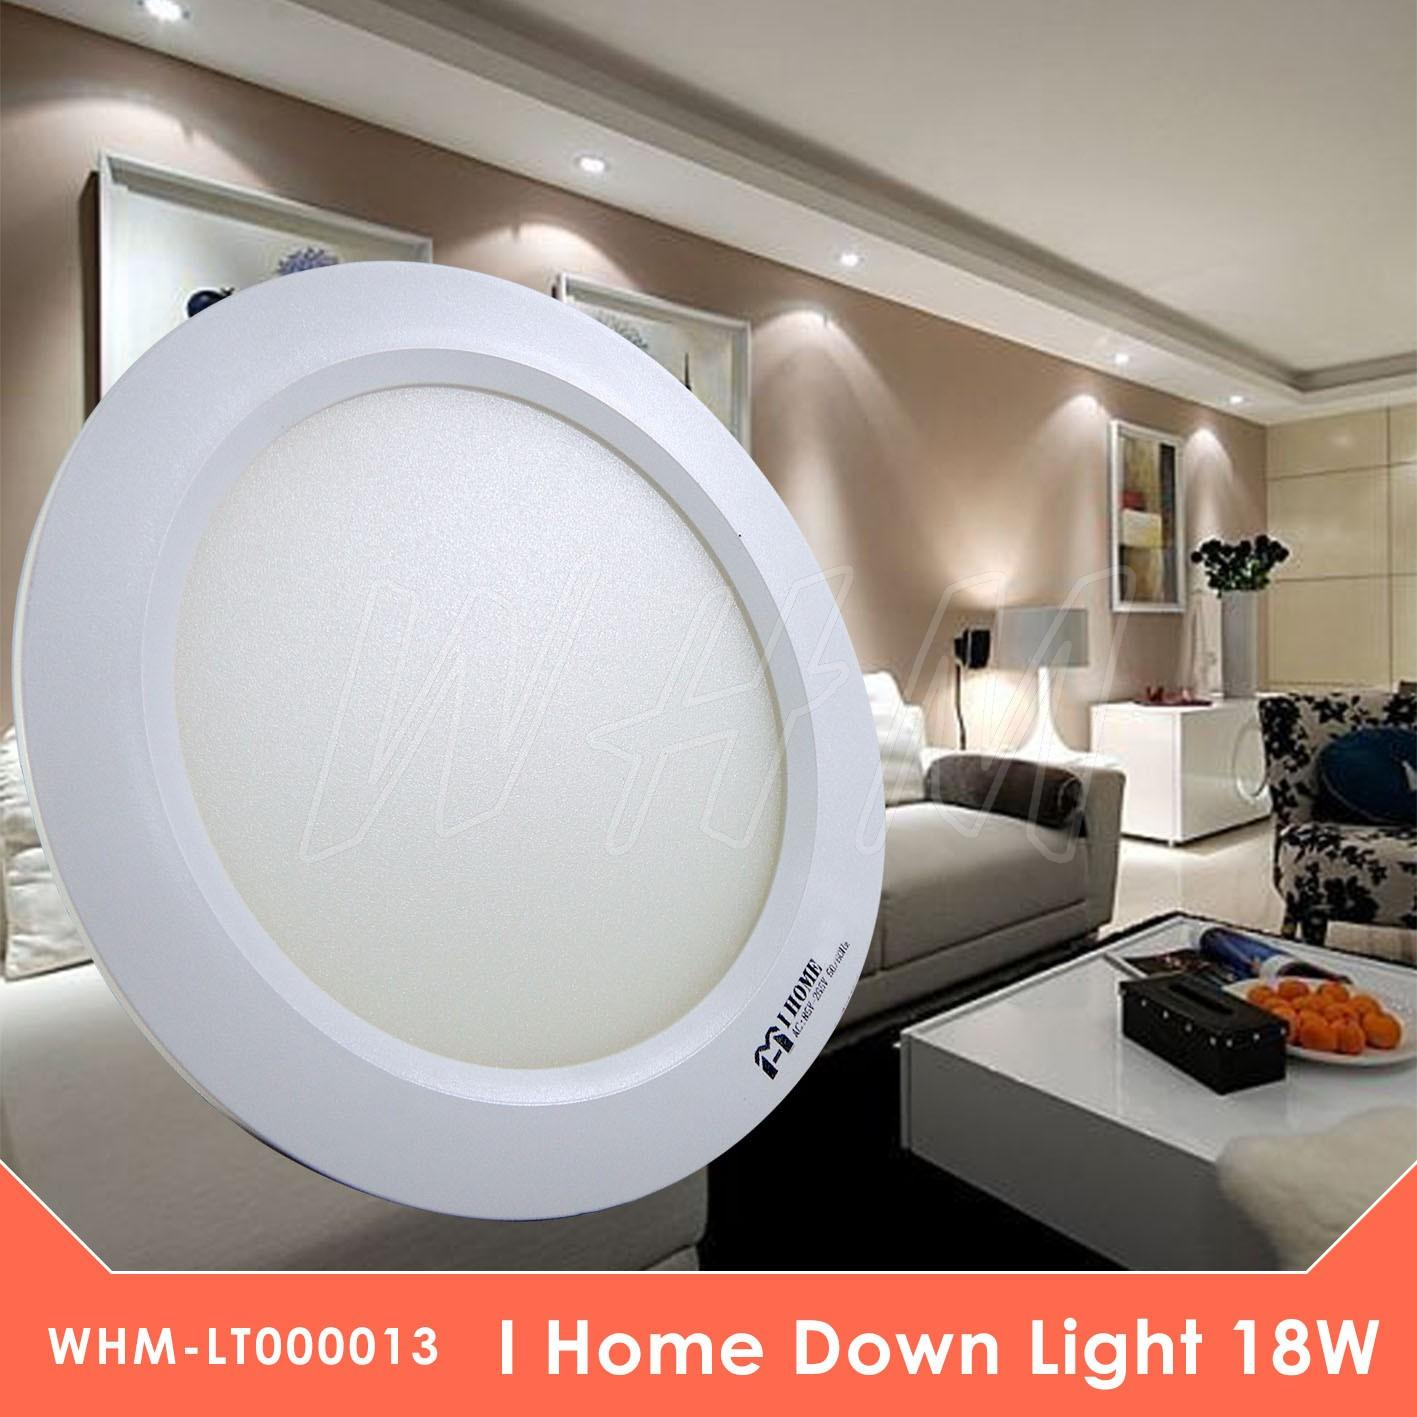 Whm Lampu Led Downlight 18 W Whm-Lt000013 By Whm_indonesia.